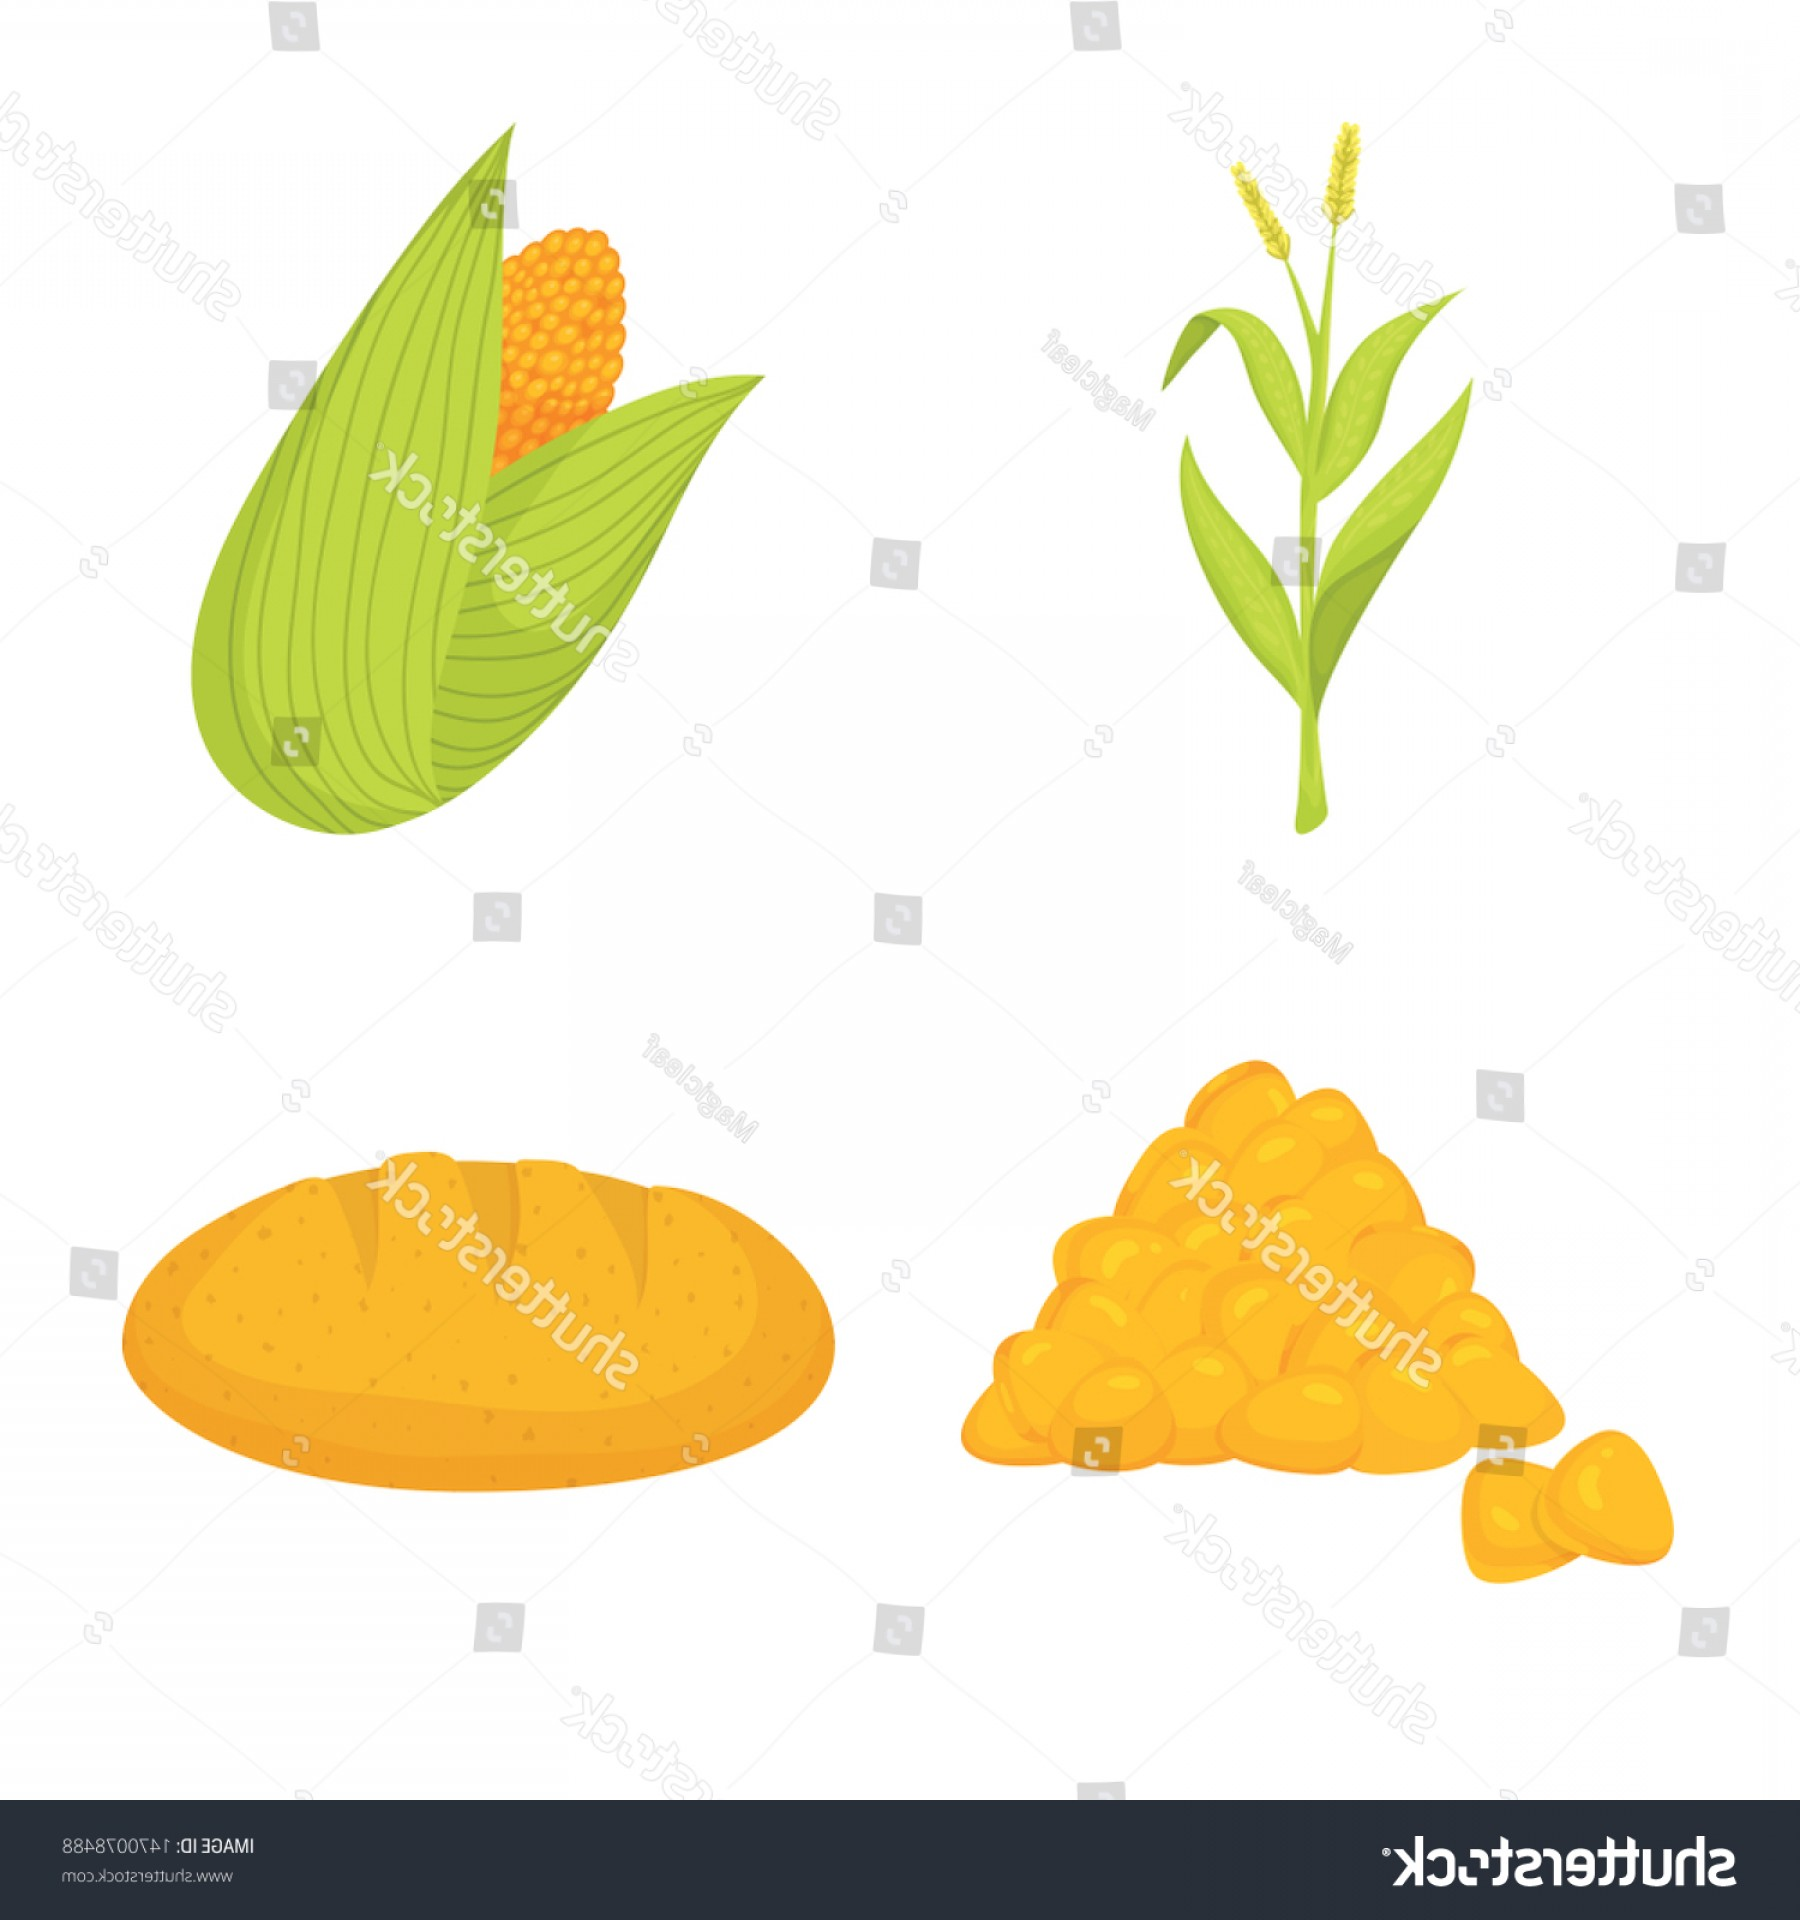 Maize Vector Tree: Isolated Object Maize Food Symbol Collection